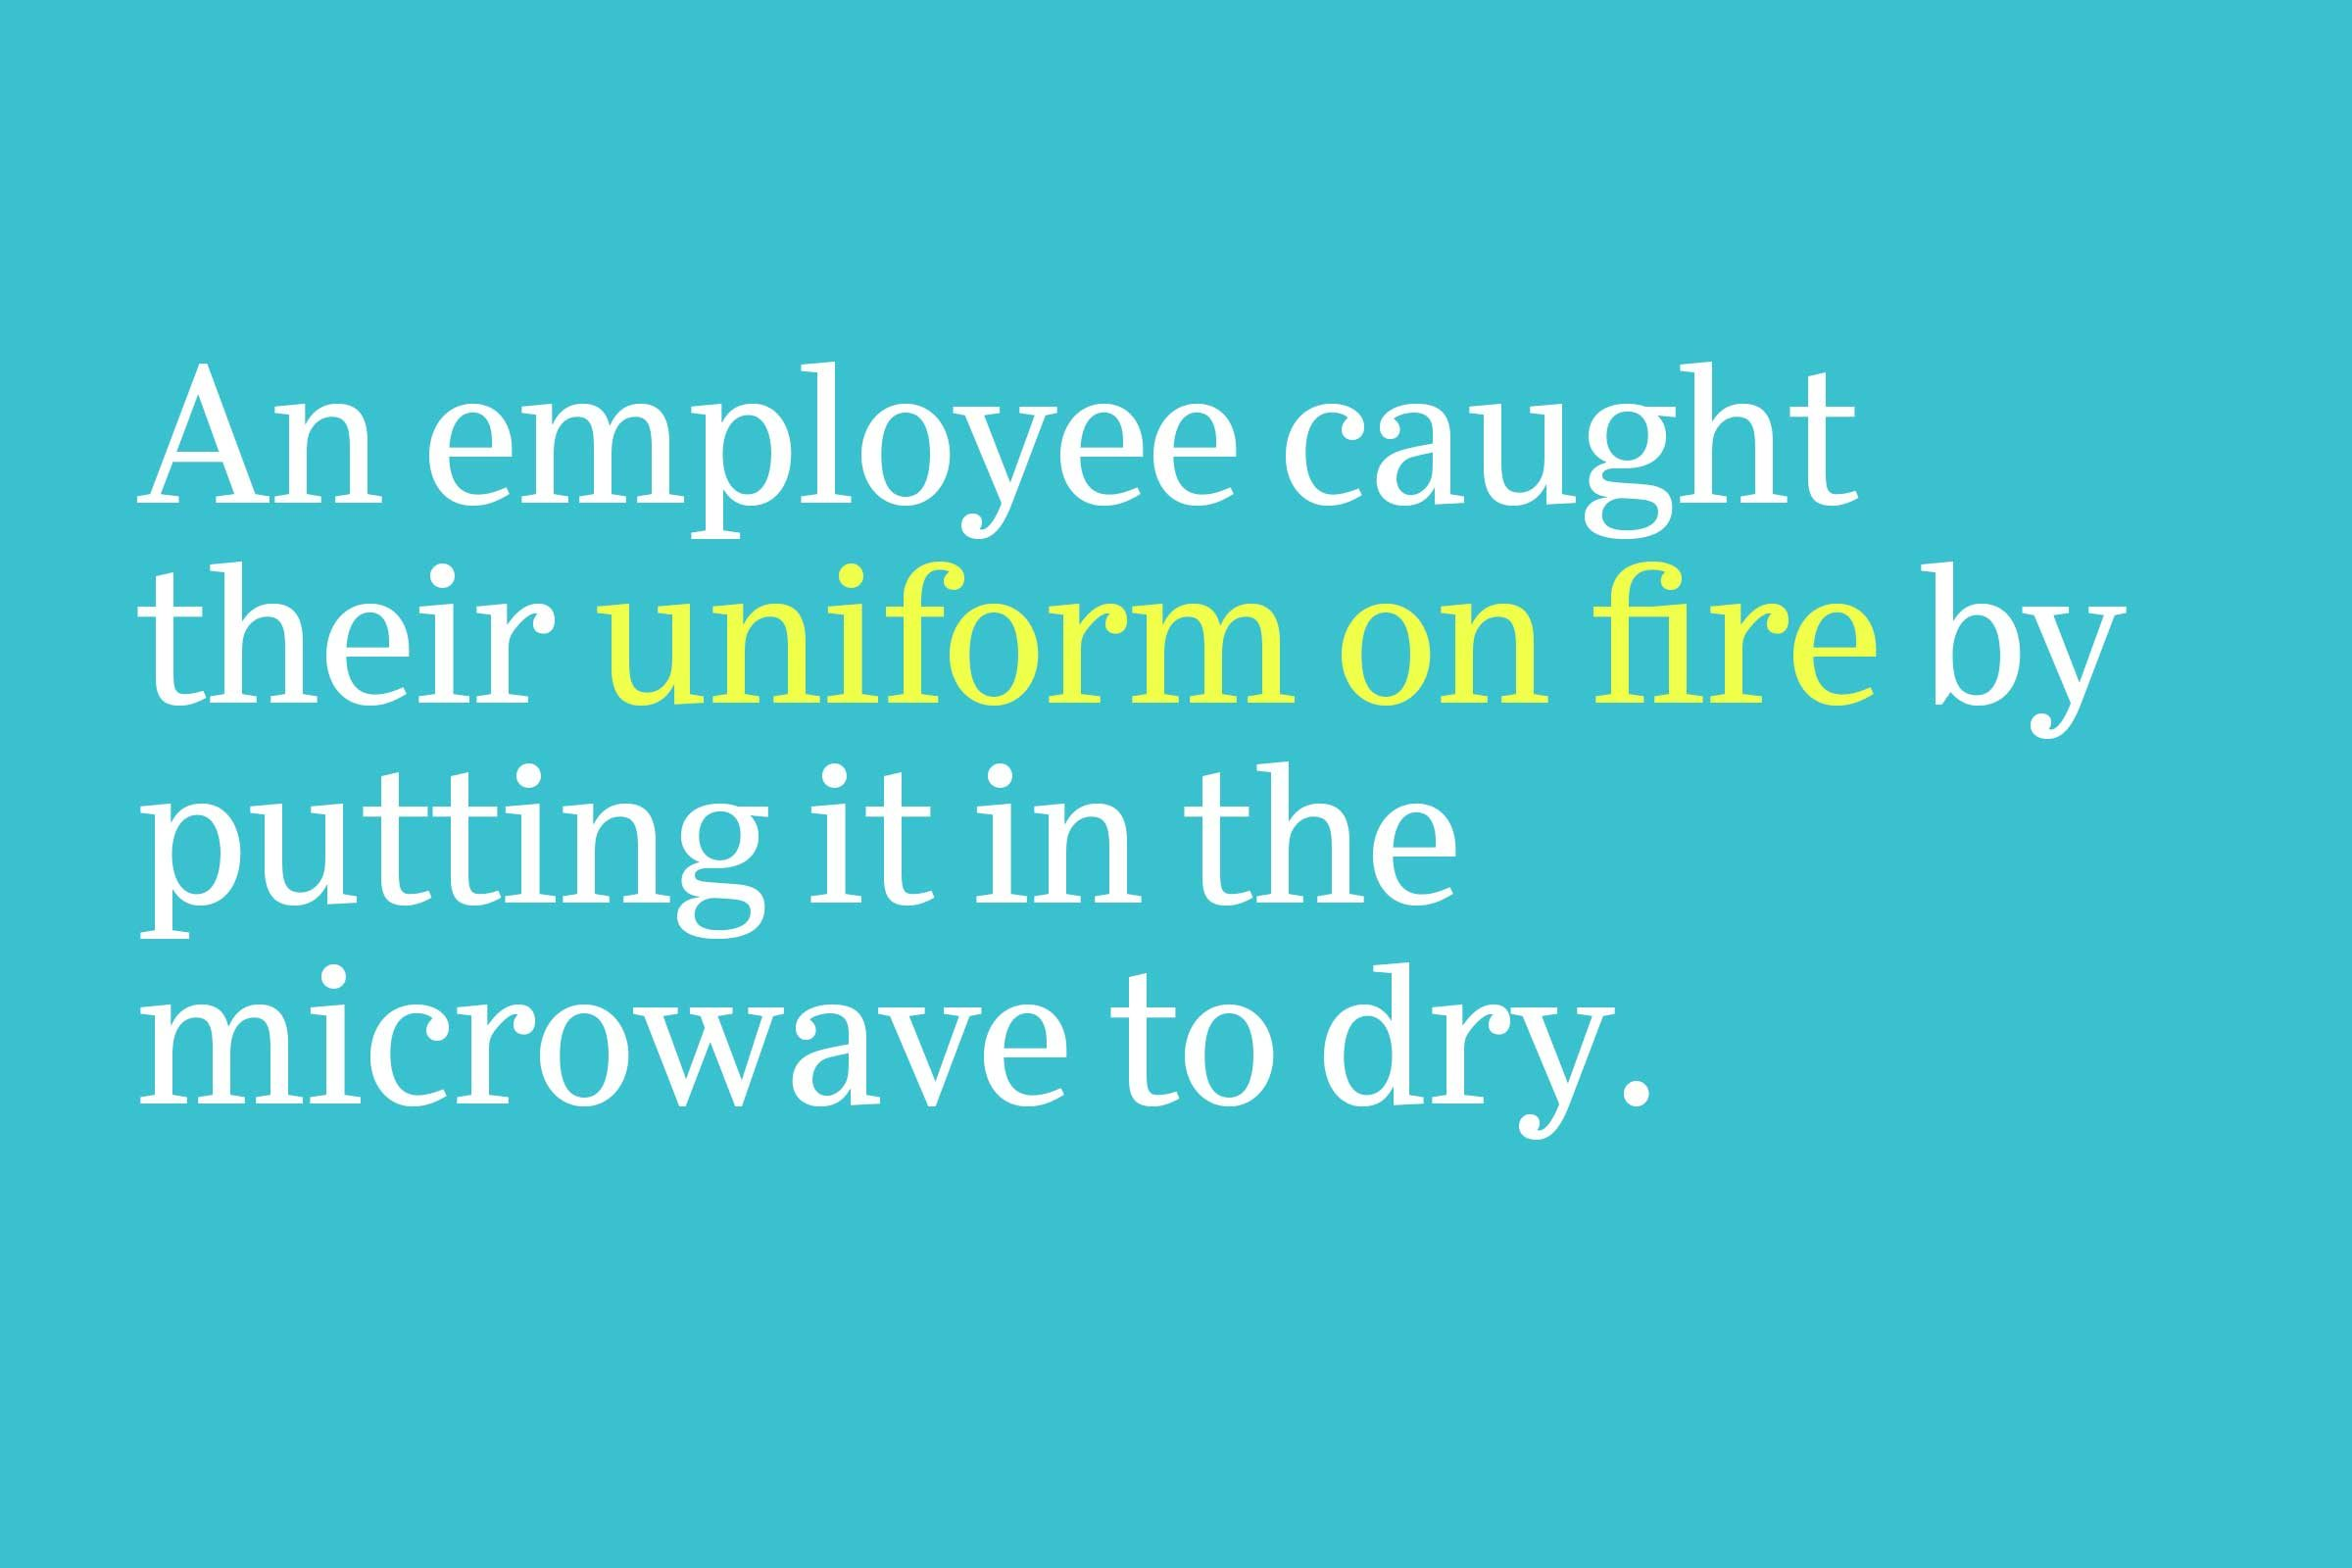 uniform on fire